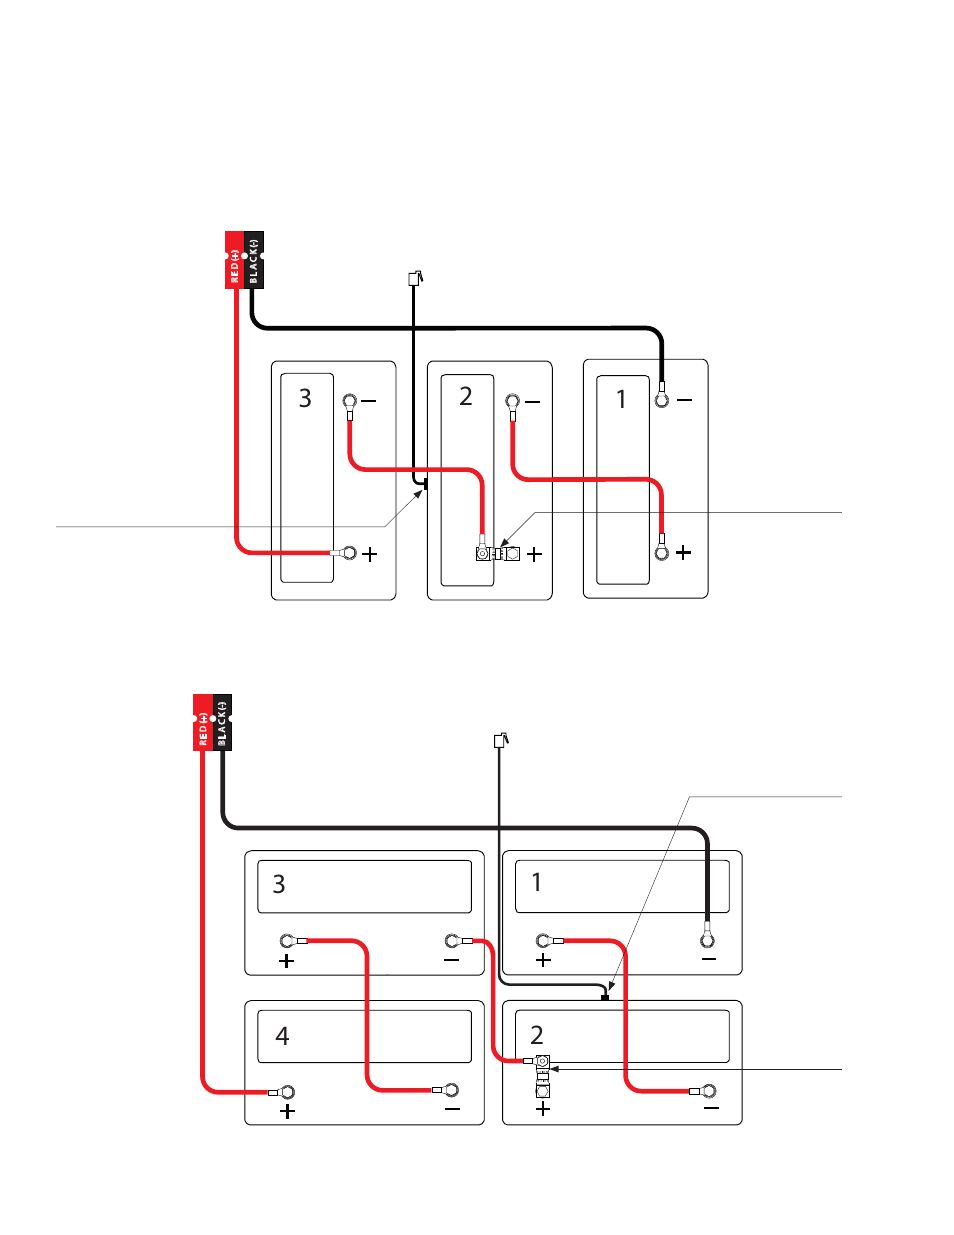 4BB76F1 Battery S Gem Wiring Diagrams | Wiring LibraryWiring Library